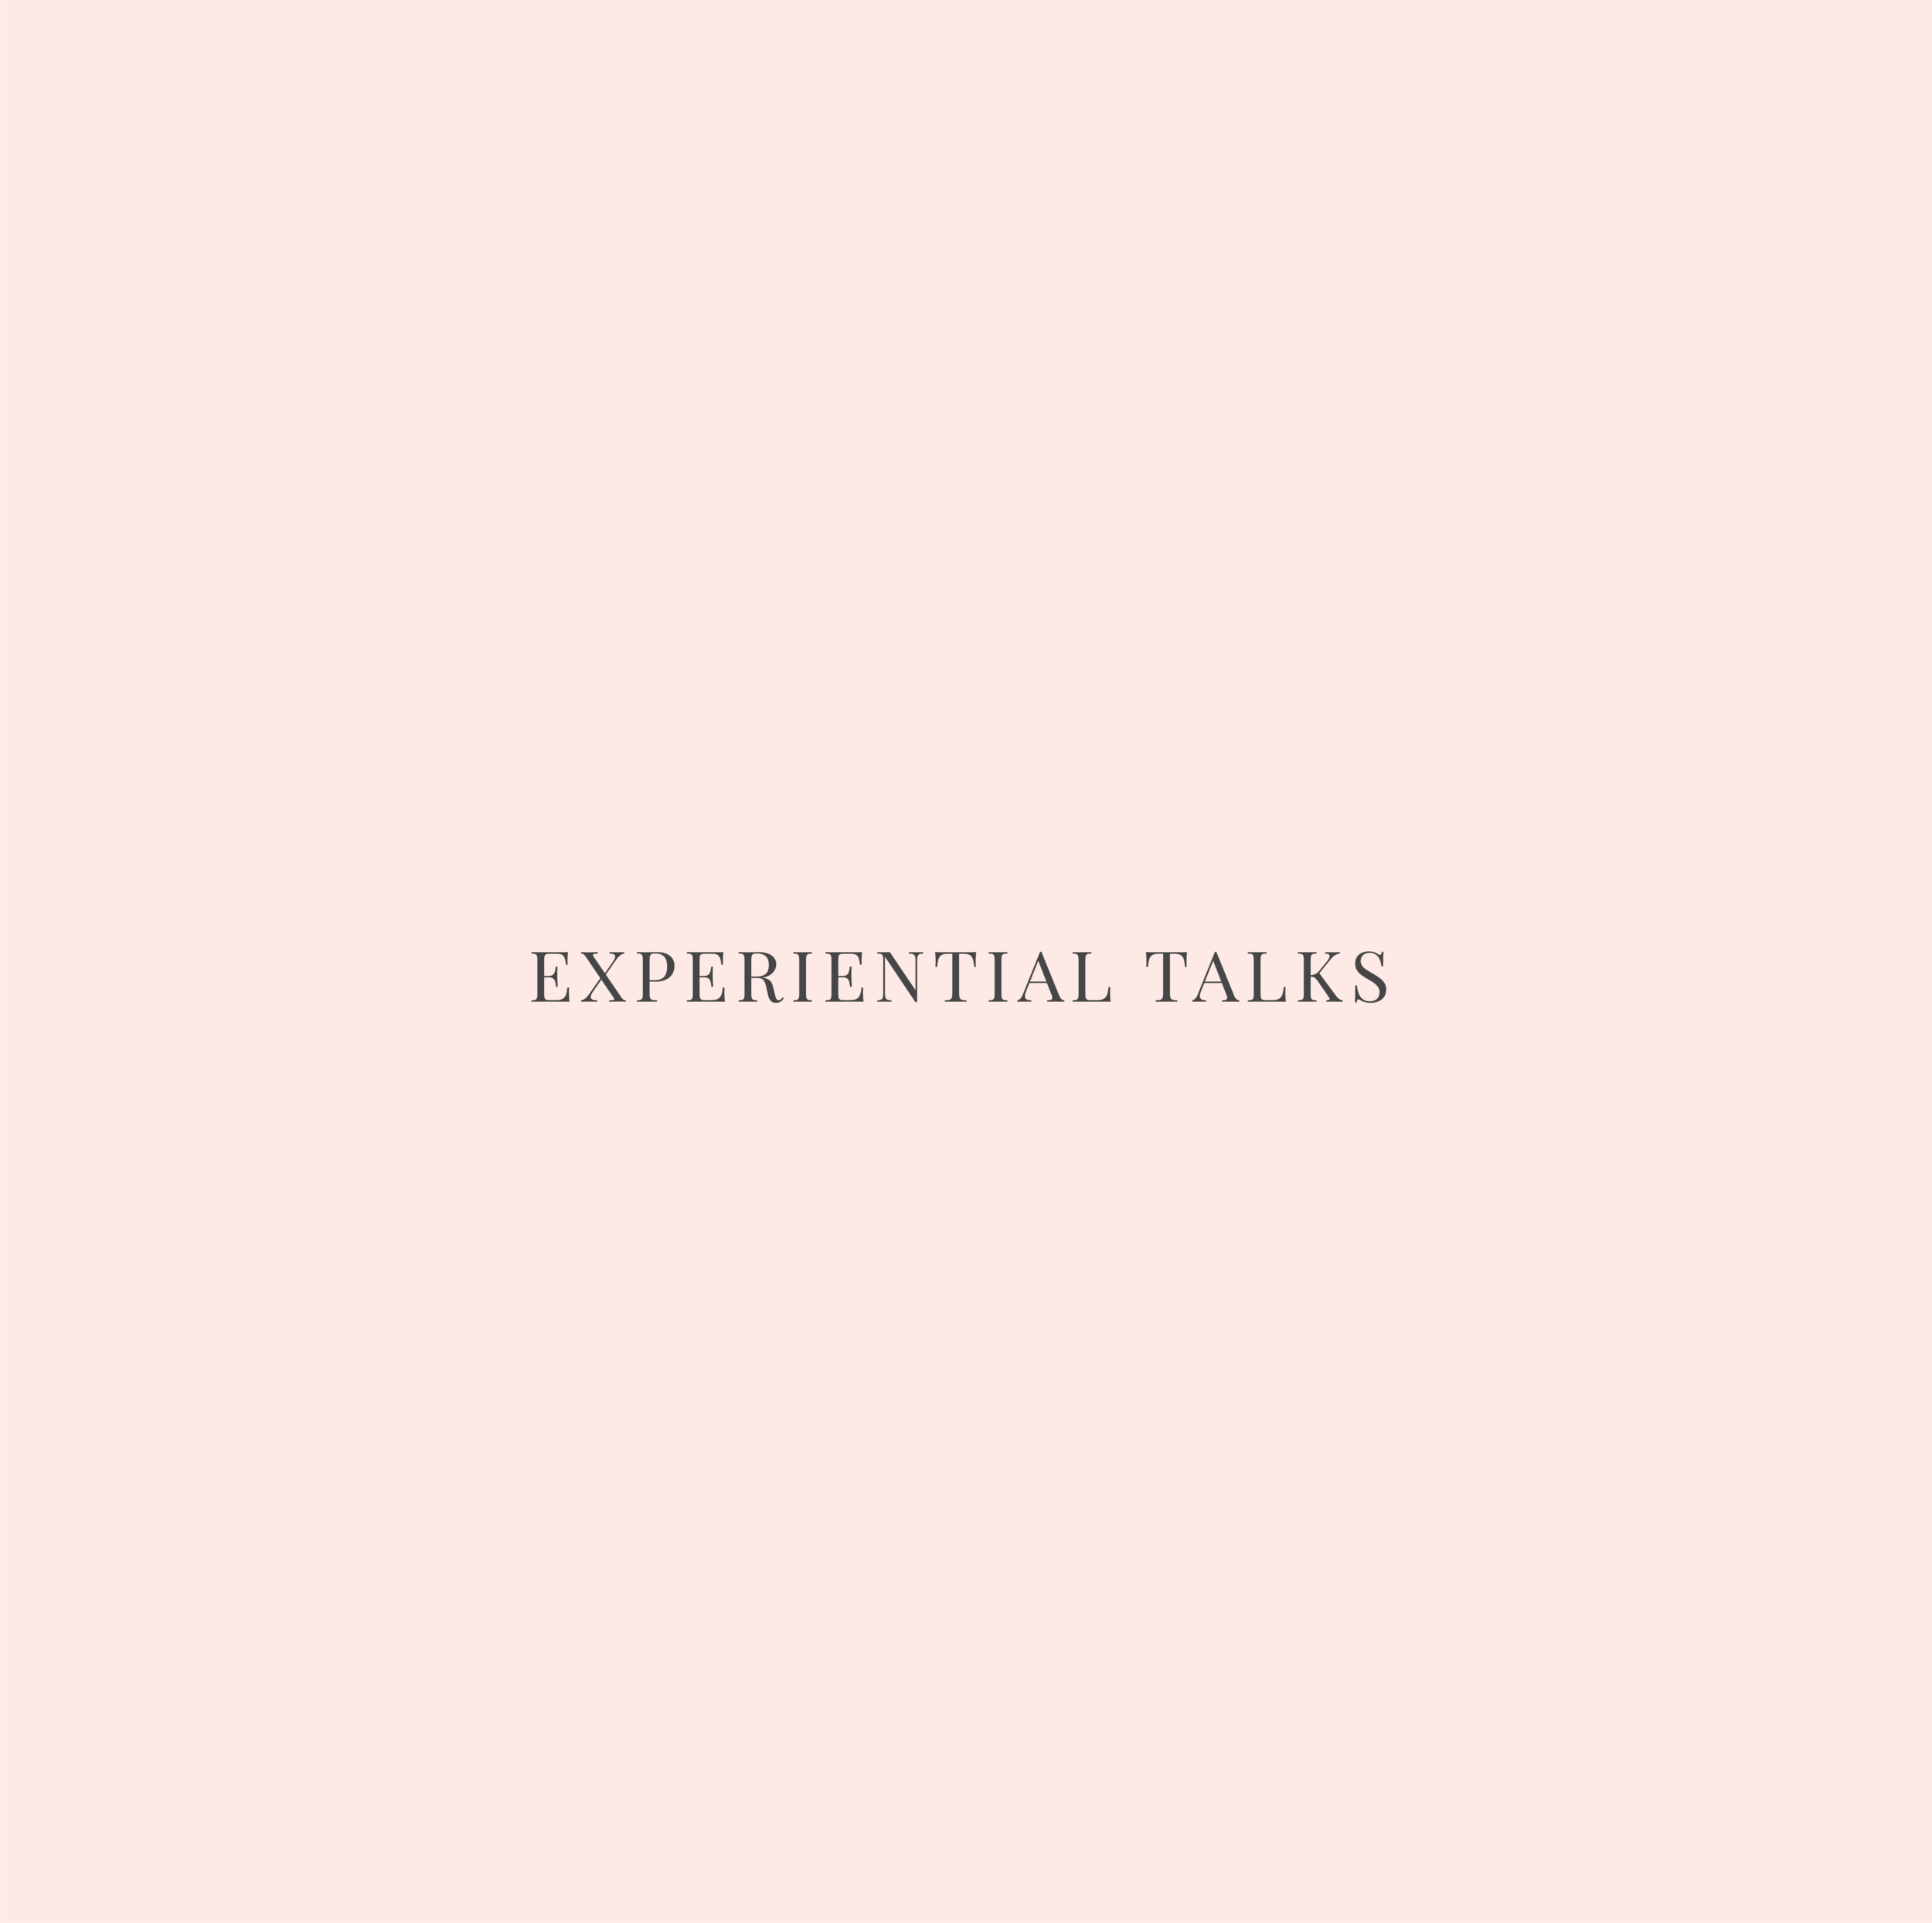 Experiential-Talks.png